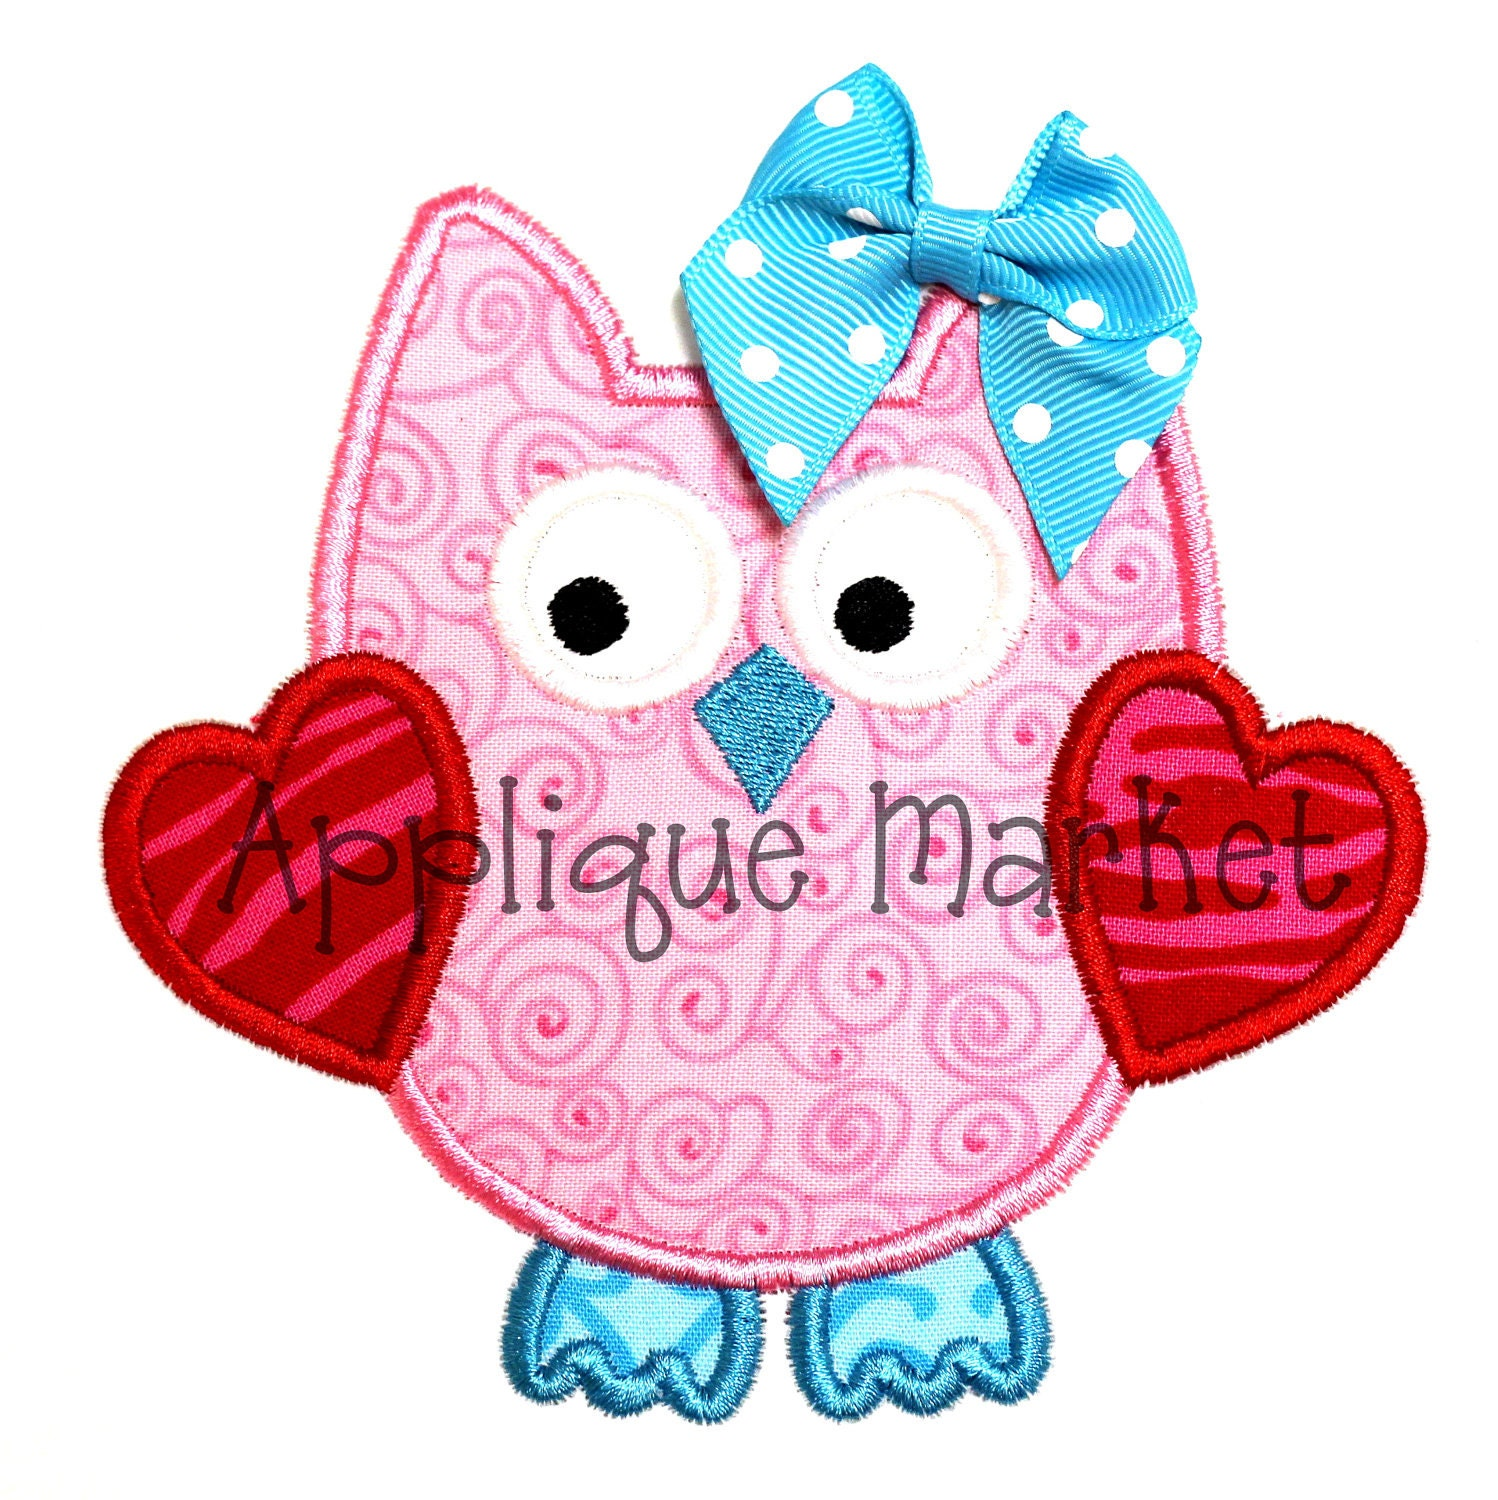 Machine embroidery design applique owl with hearts instant